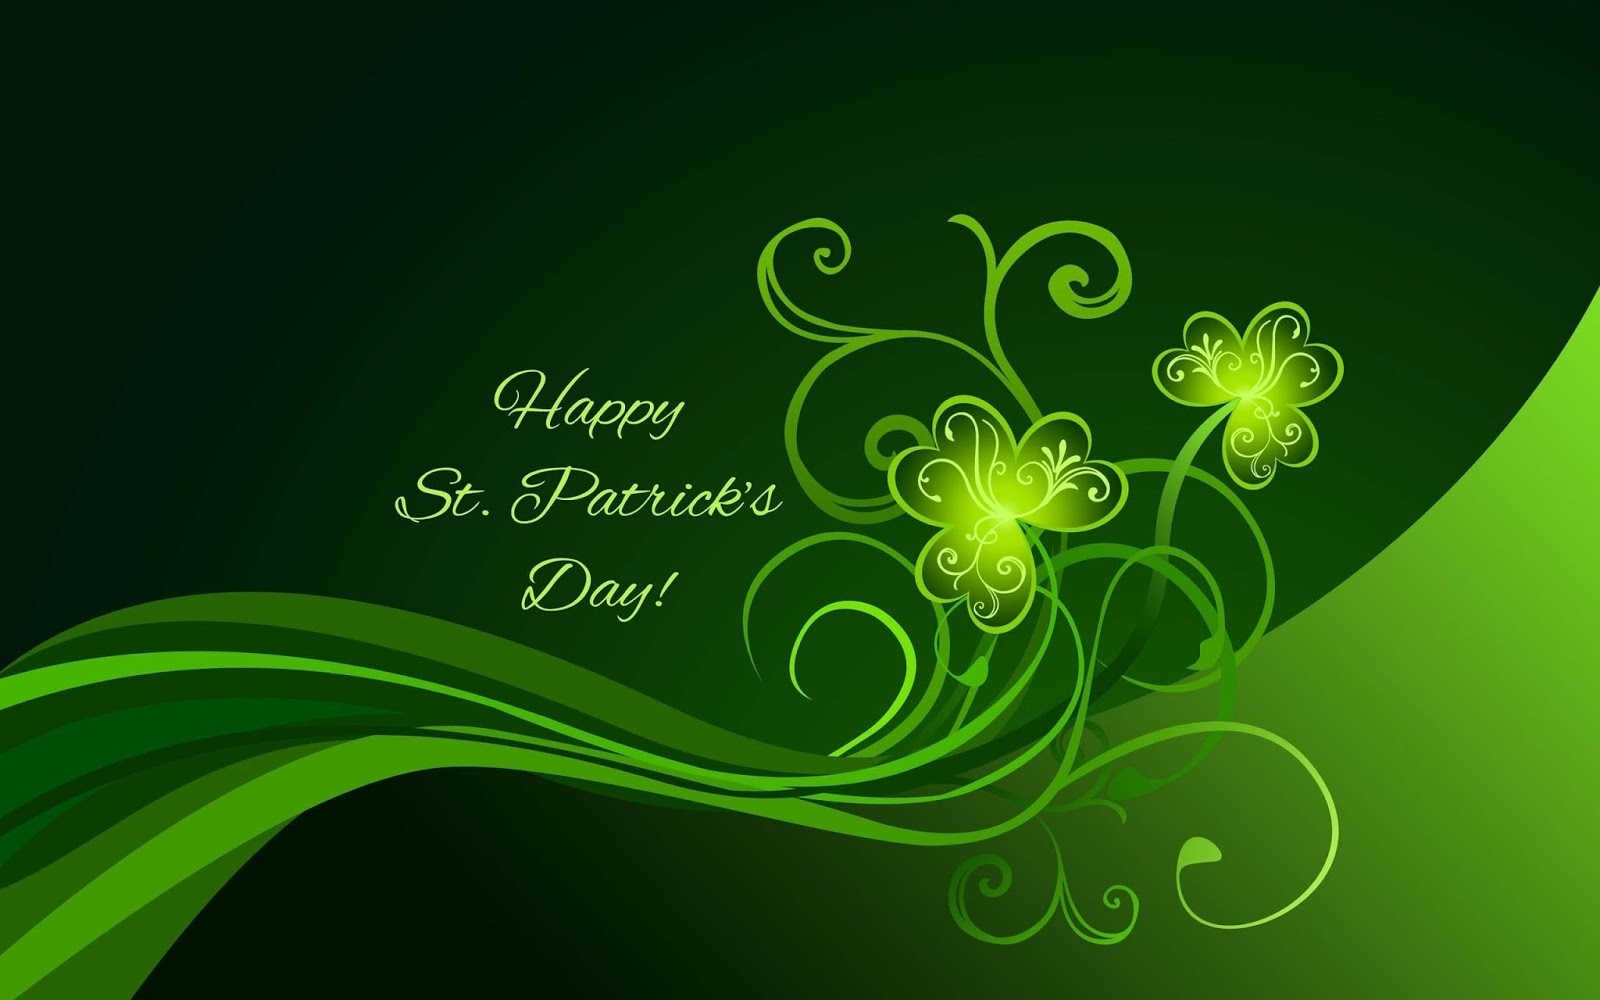 st patrick's day 2016 wishes in hd united kingdom - easter day 2016